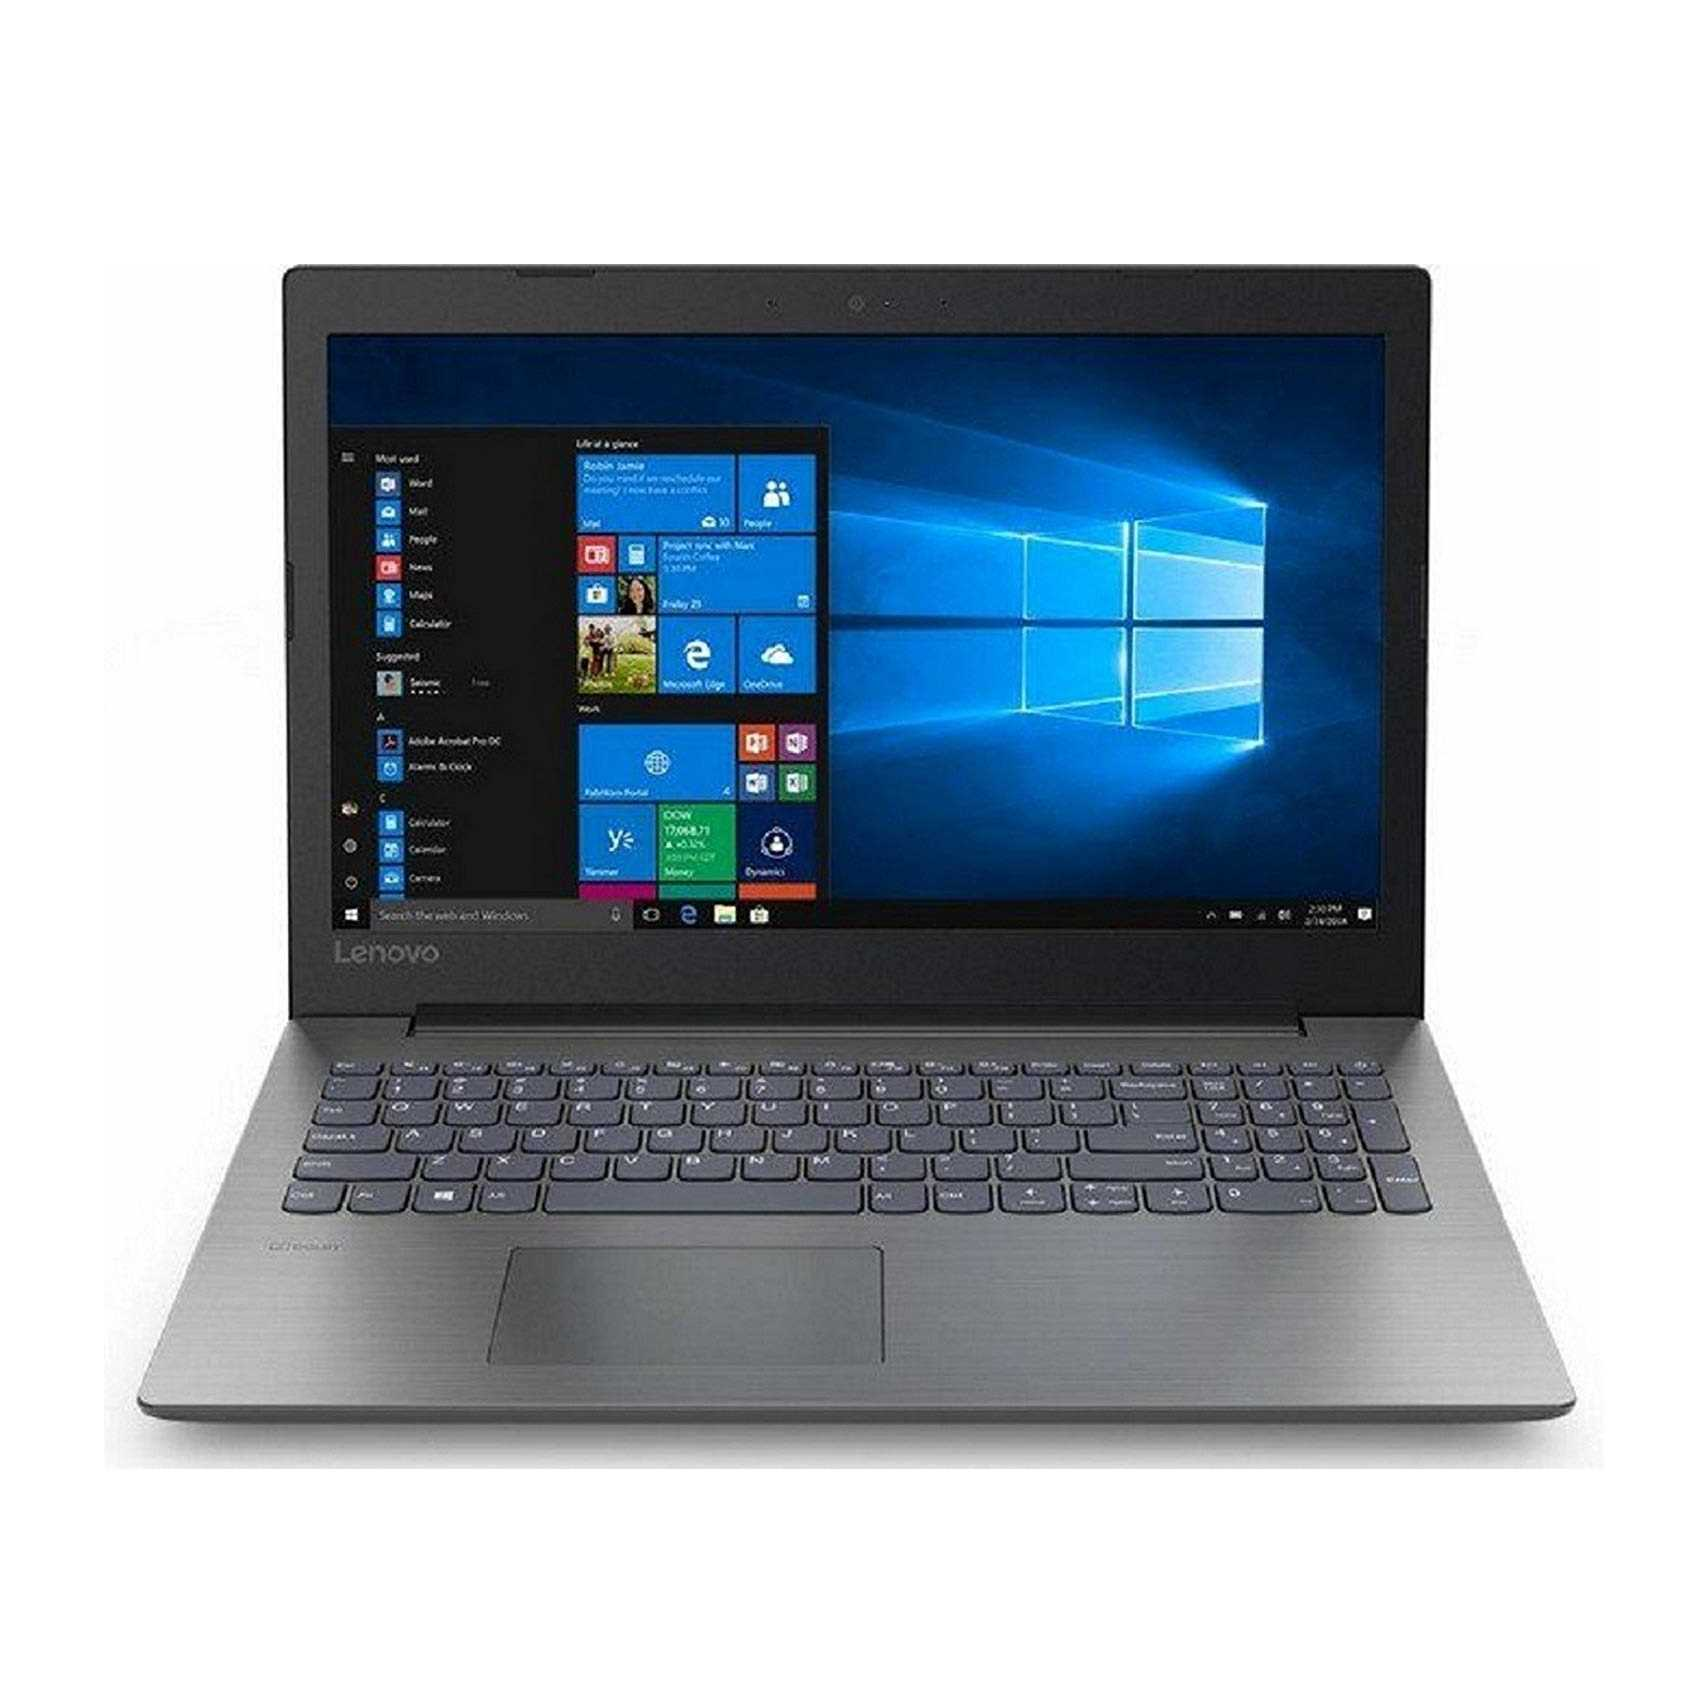 Lenovo Ideapad 330 81DE012NIN Laptop